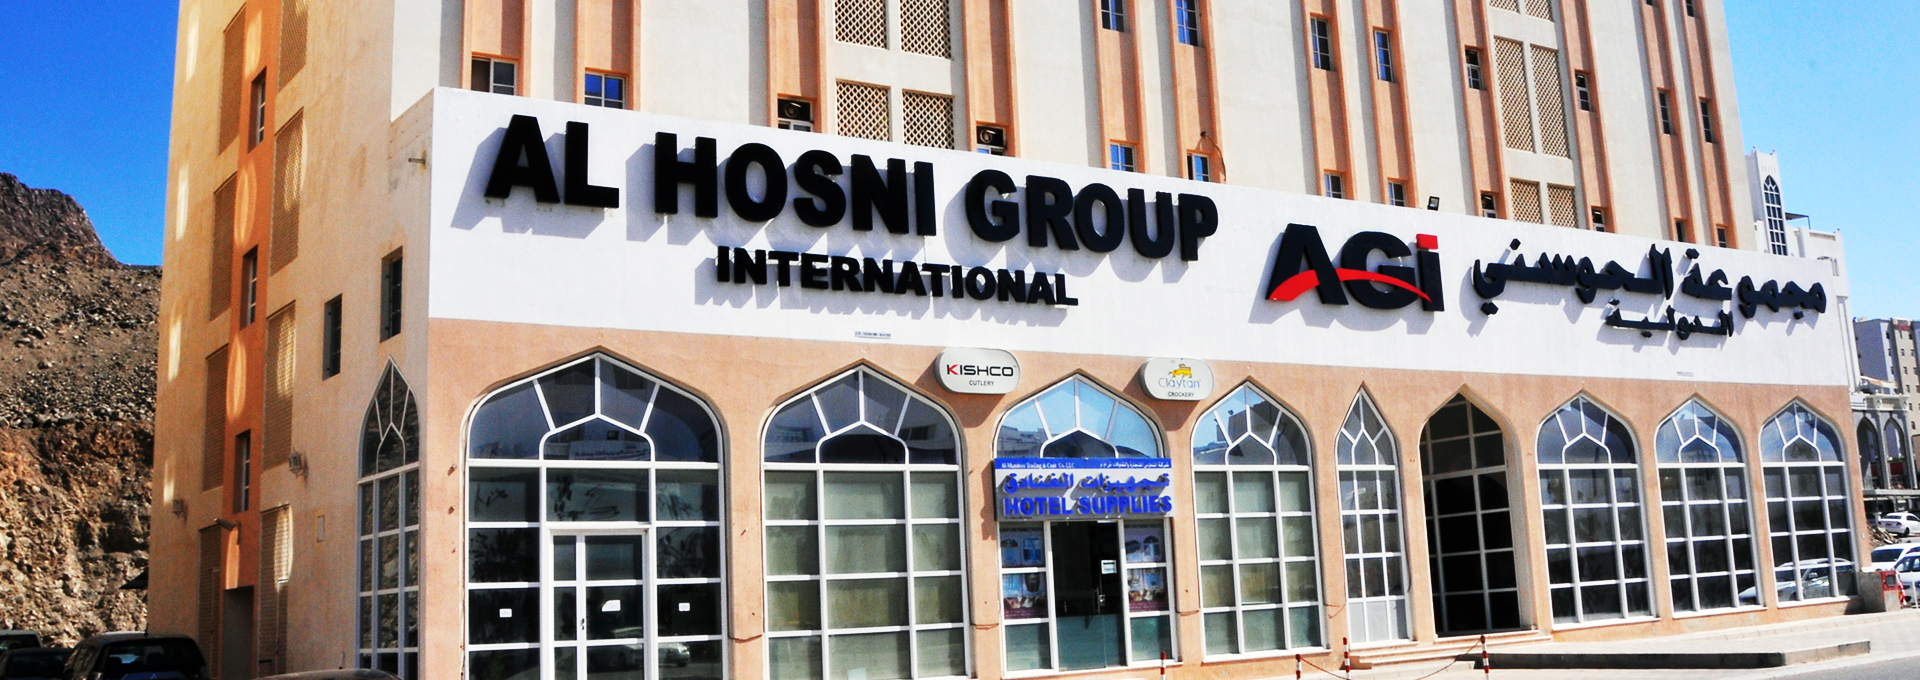 Al Hosni Group International – AGI